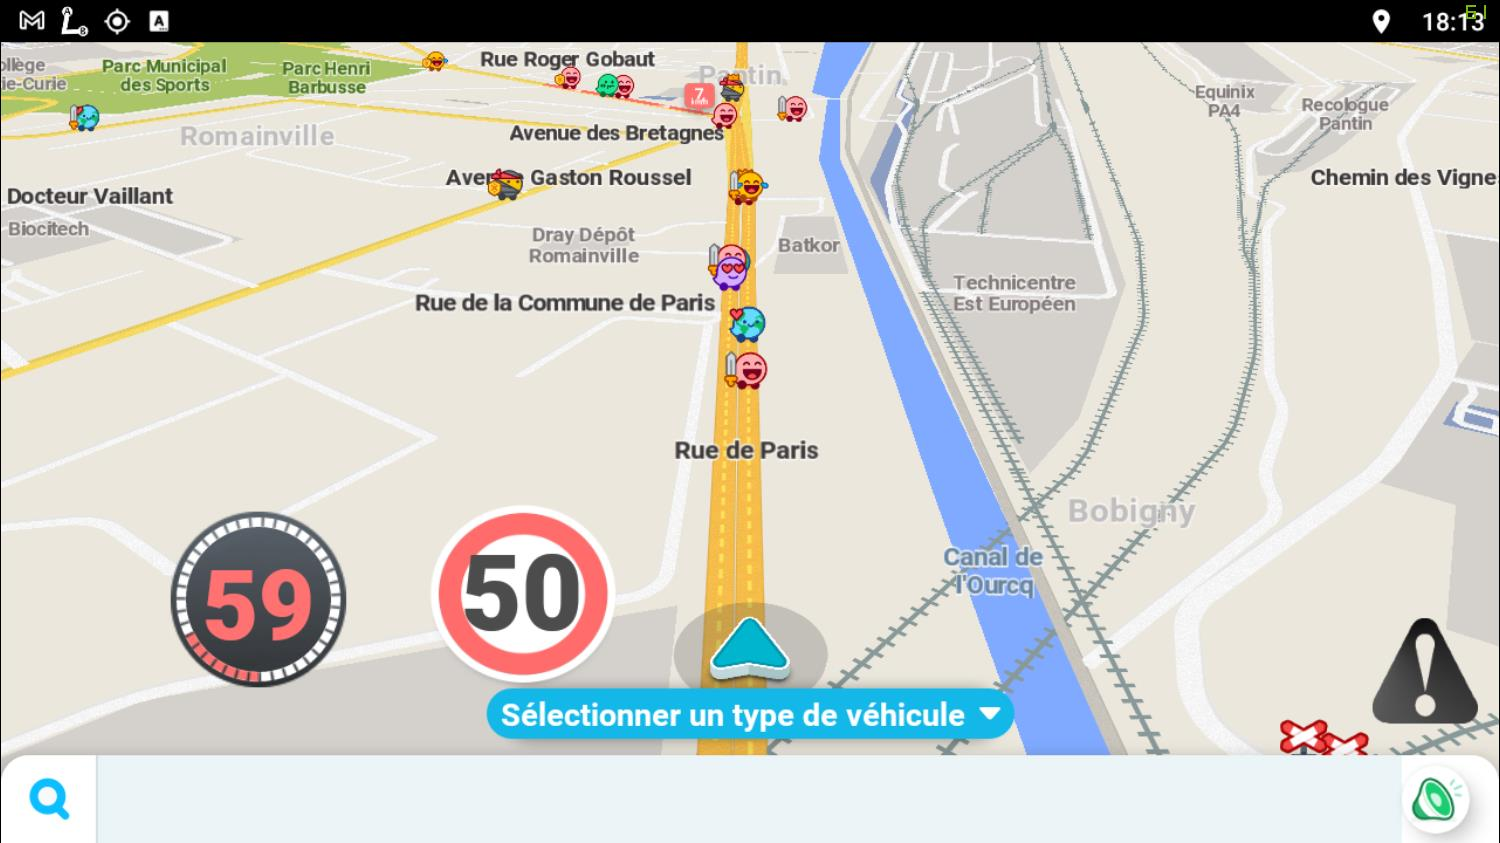 Waze_Screenshot_2021.01.30_18.13.46.jpg